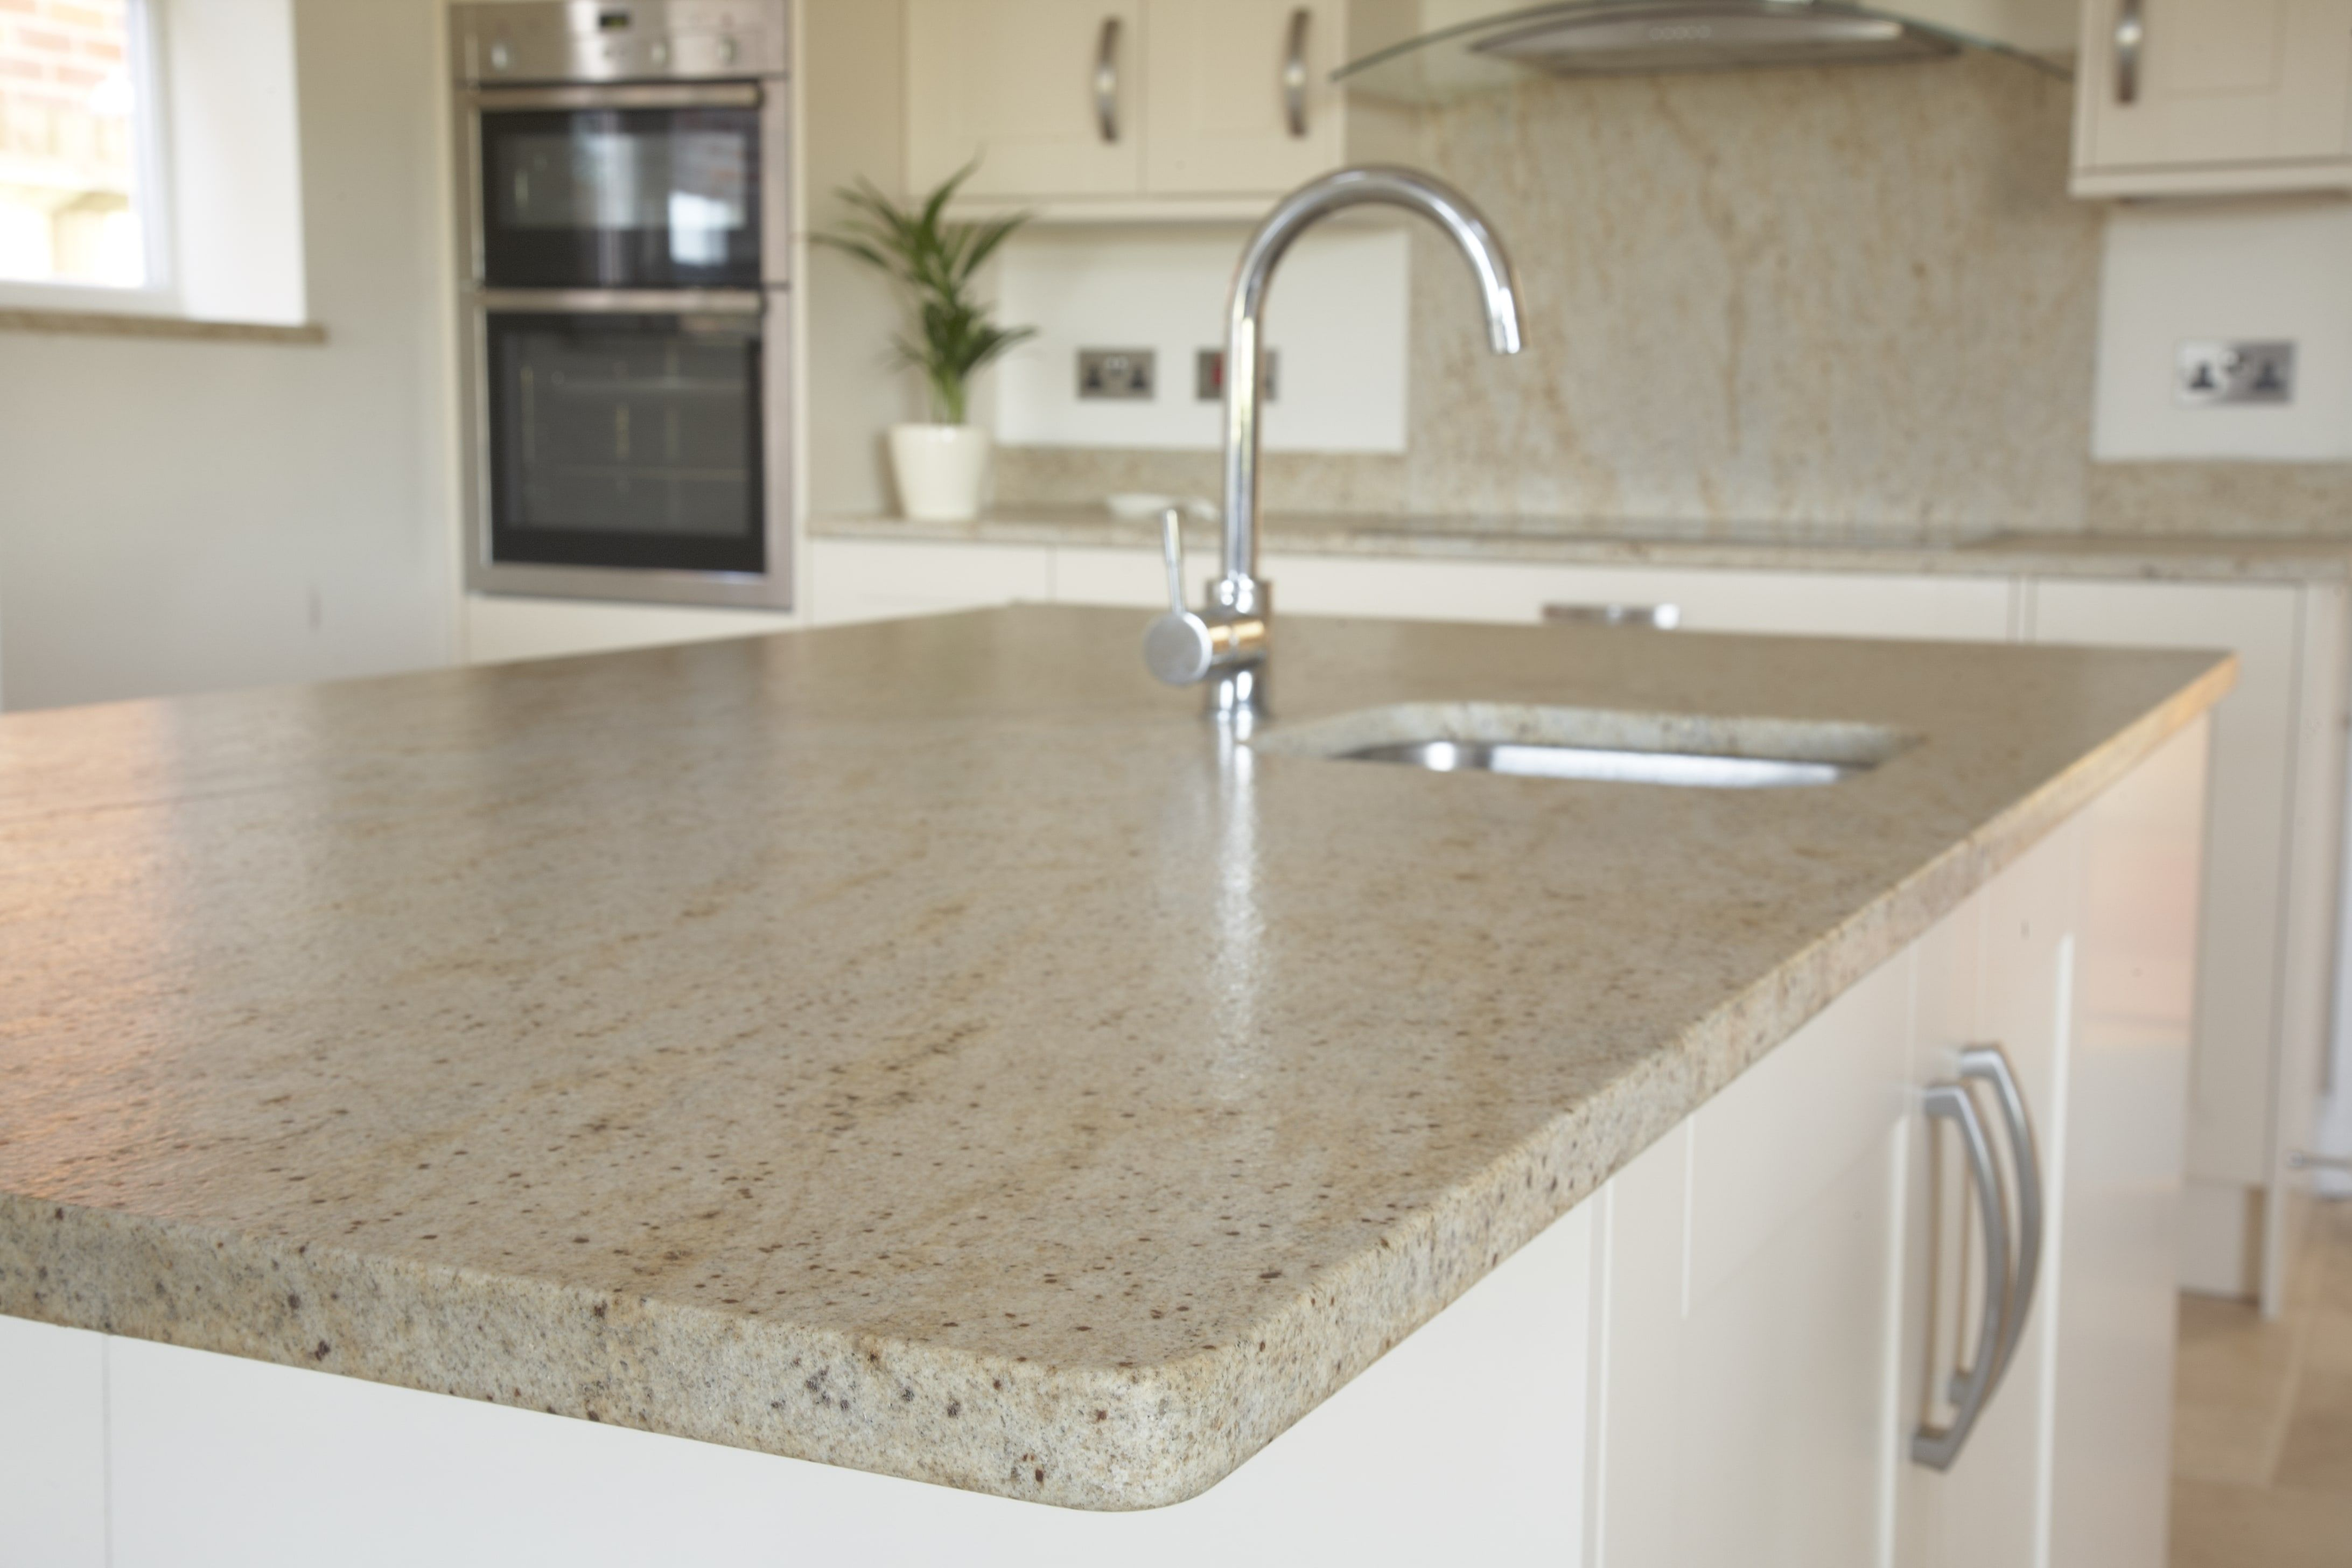 Kitchen island with polished stone kitchen worktop and inlaid sink